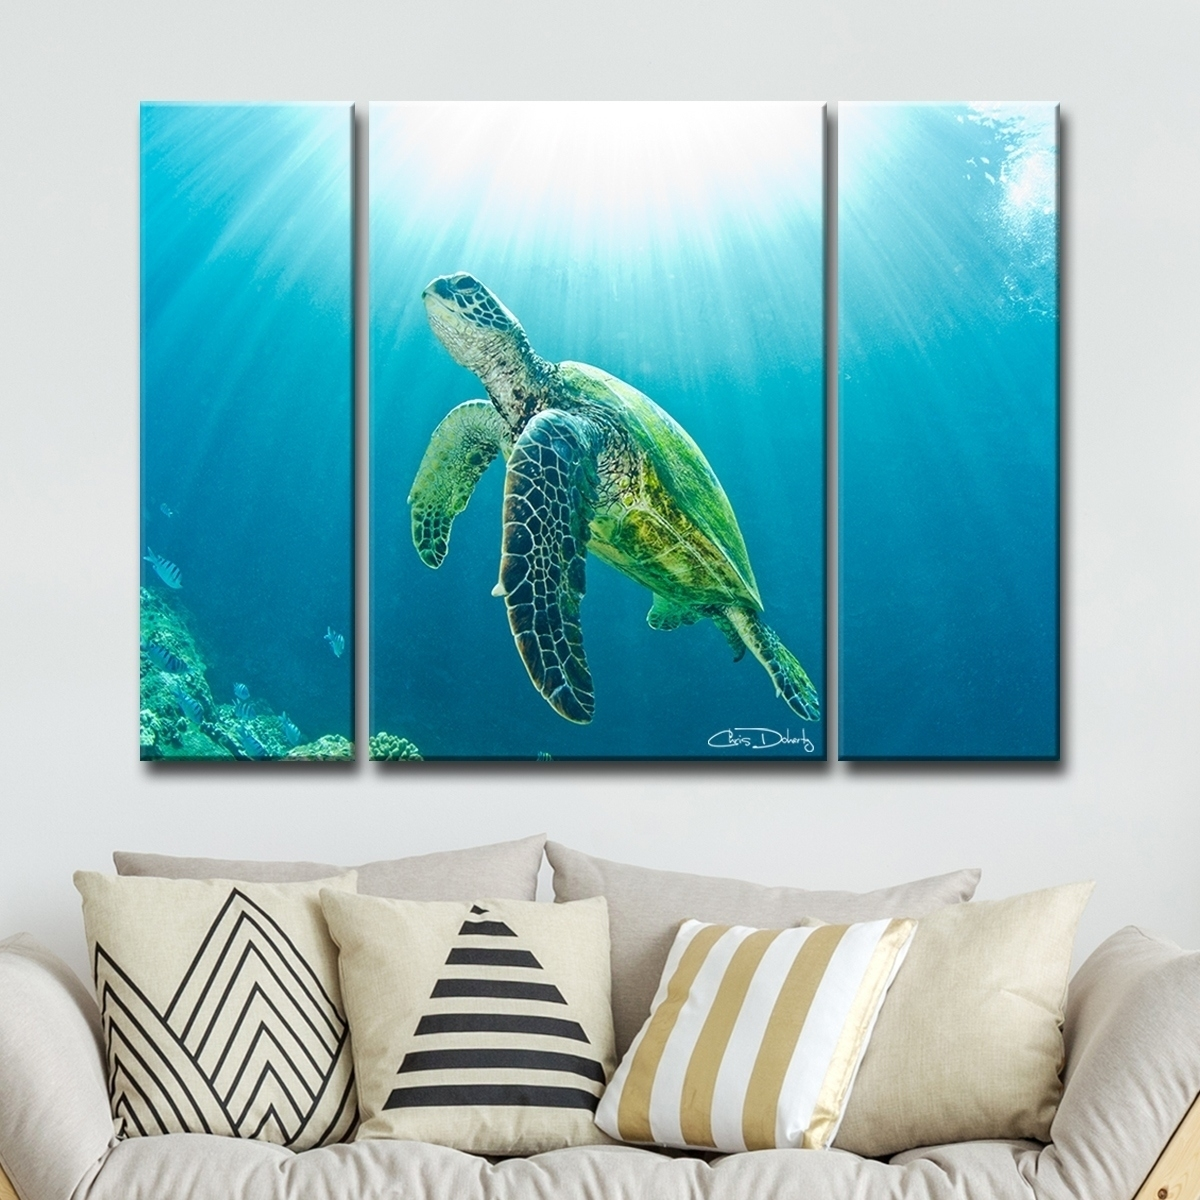 Shop Christopher Doherty 'sea Turtle' Canvas Wall Art (3 Piece Pertaining To Most Recent Sea Turtle Canvas Wall Art (Gallery 2 of 20)